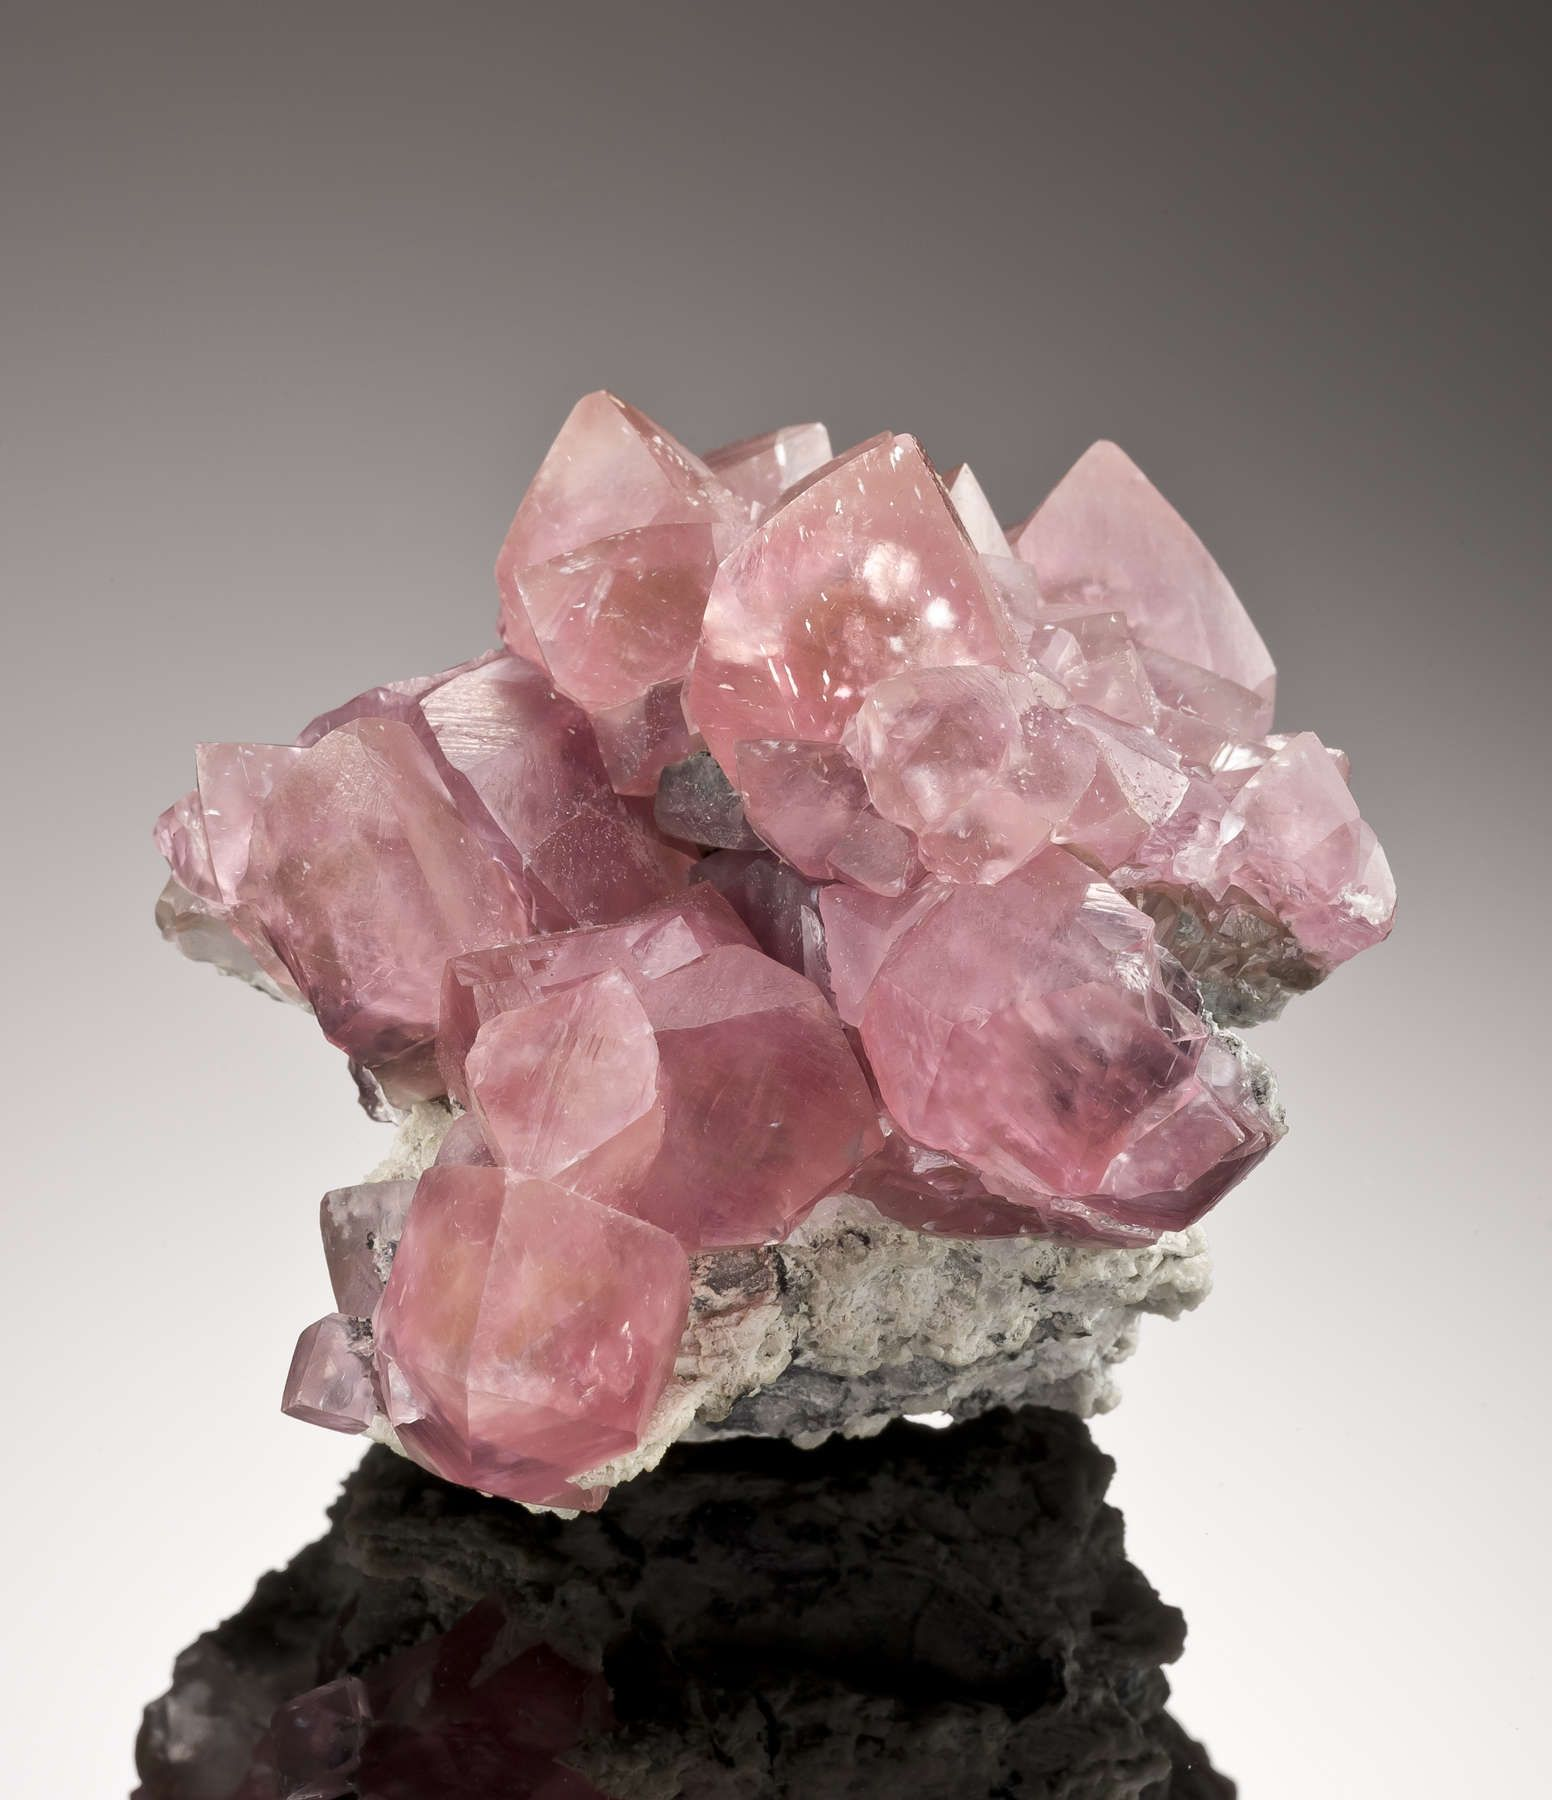 Sharp crystals classic soft pink smithsonite like Tsumeb late 1960s